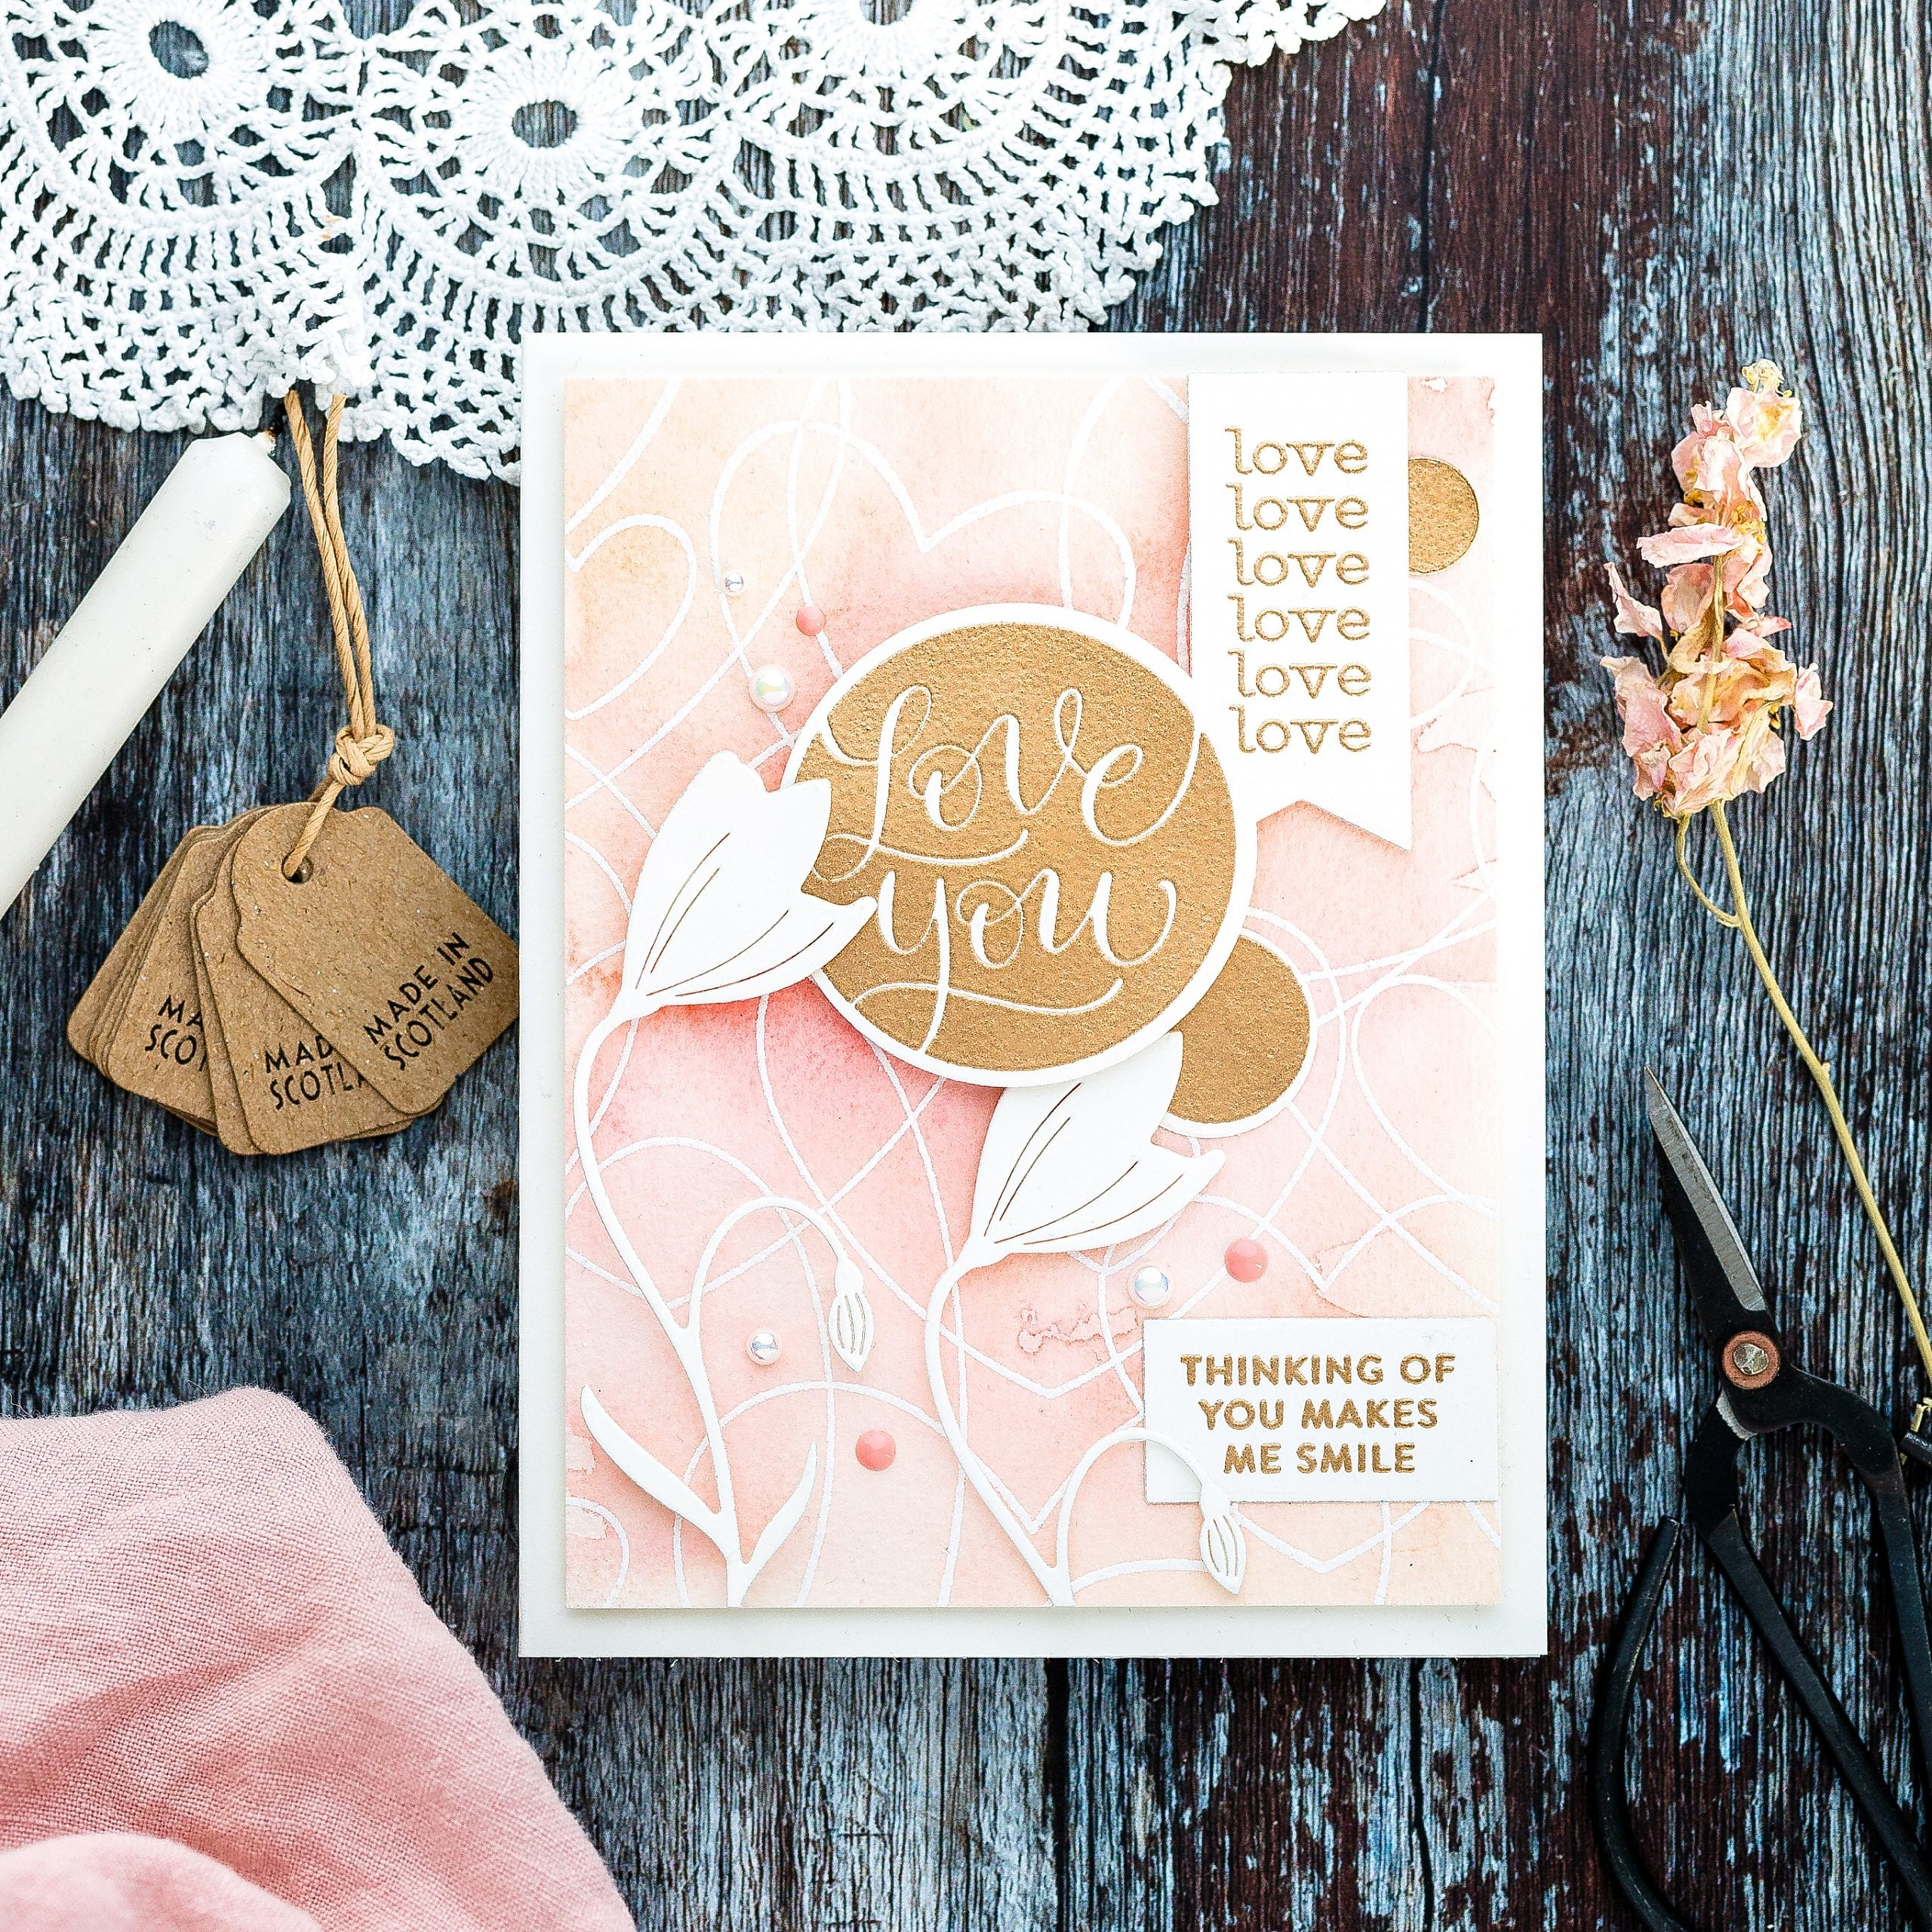 Easy watercolour background tutorial handmade Valentine's card by Debby Hughes using supplies from Simon Says Stamp. Click to find out more. #handmadecard #homemade #watercolor